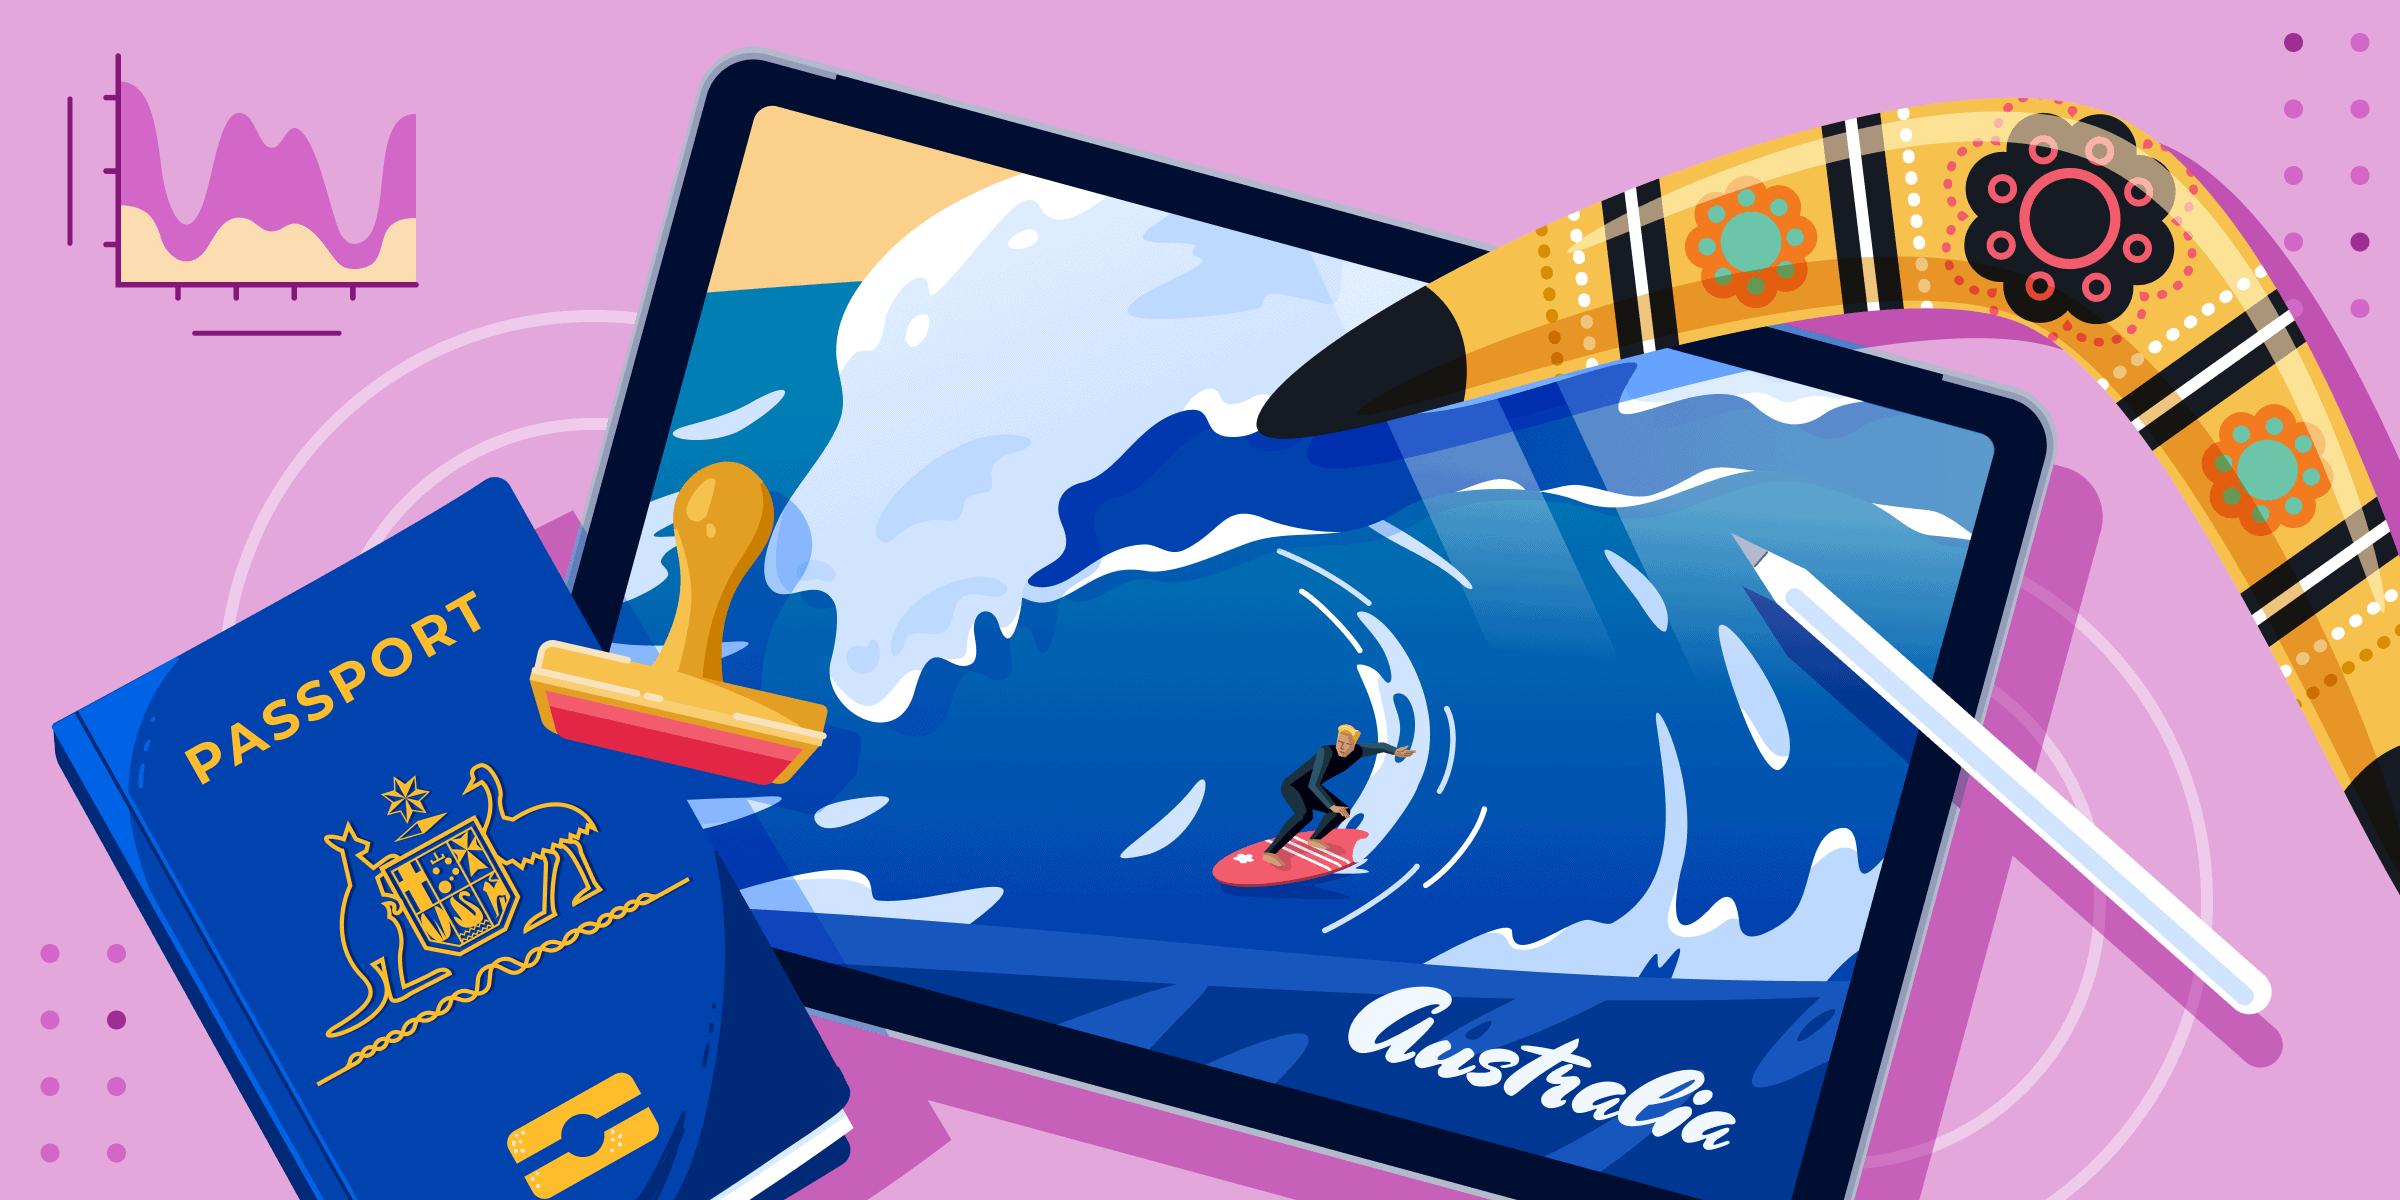 AI: Australia Student Visa Trends in 2020/21 banner featuring a picture of surfer on a big wave, a passport, and a boomerang